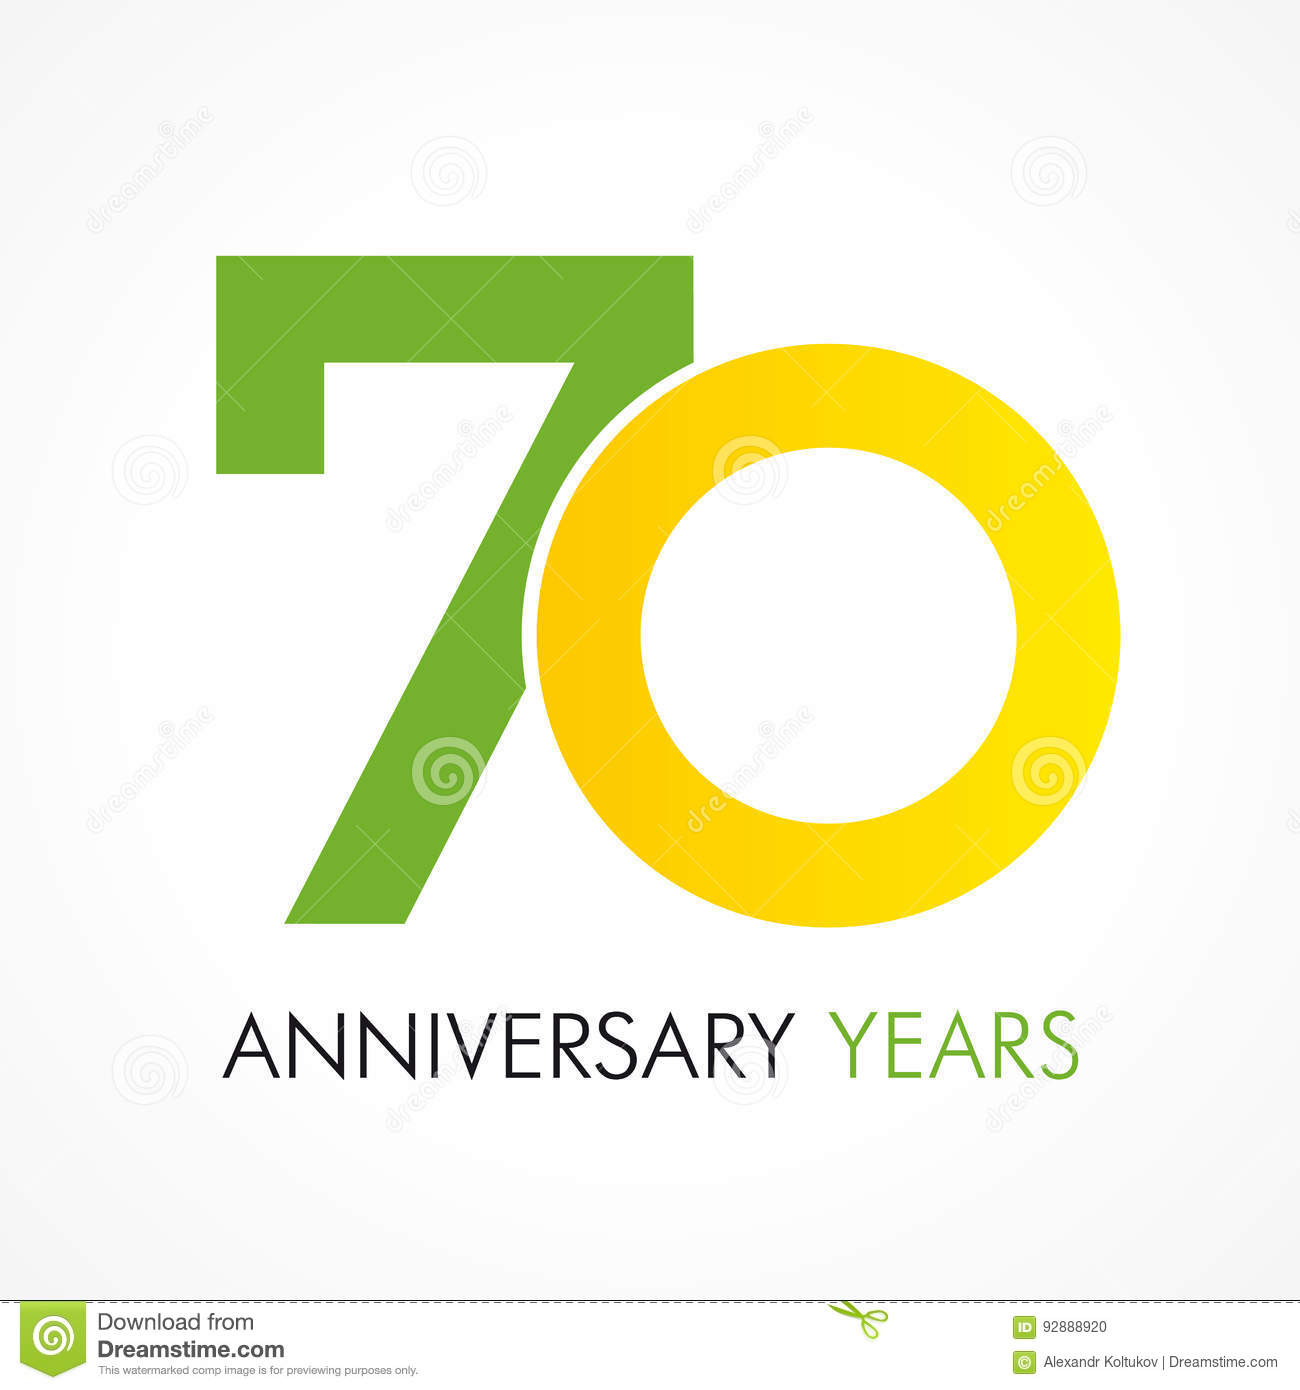 70 Years Old Celebrating Classic Logo